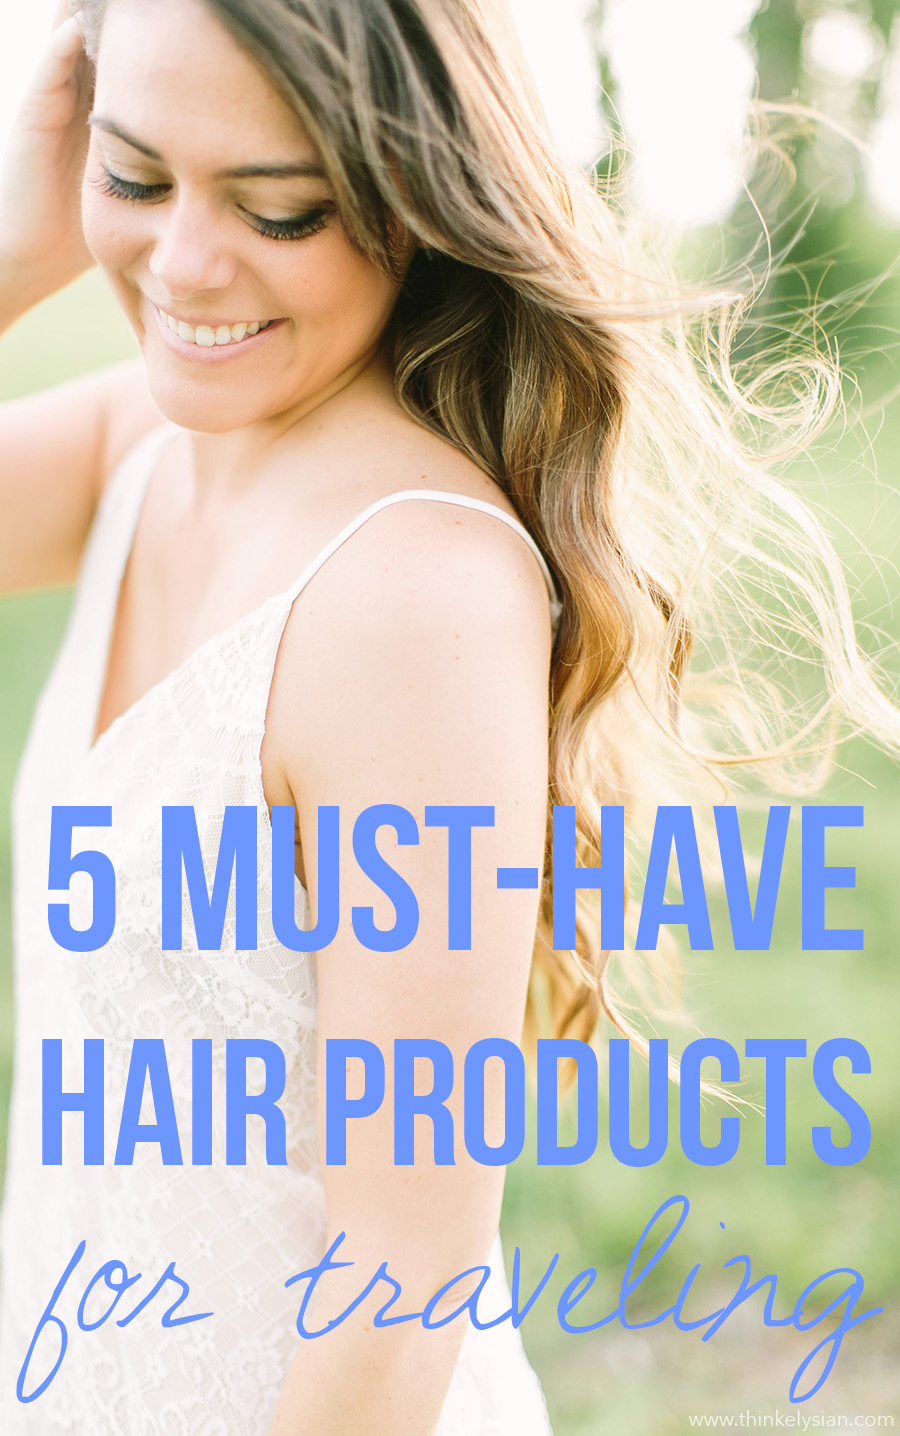 5 Must-have hair products to tame your mane while traveling // Travel beauty on thinkelysian.com